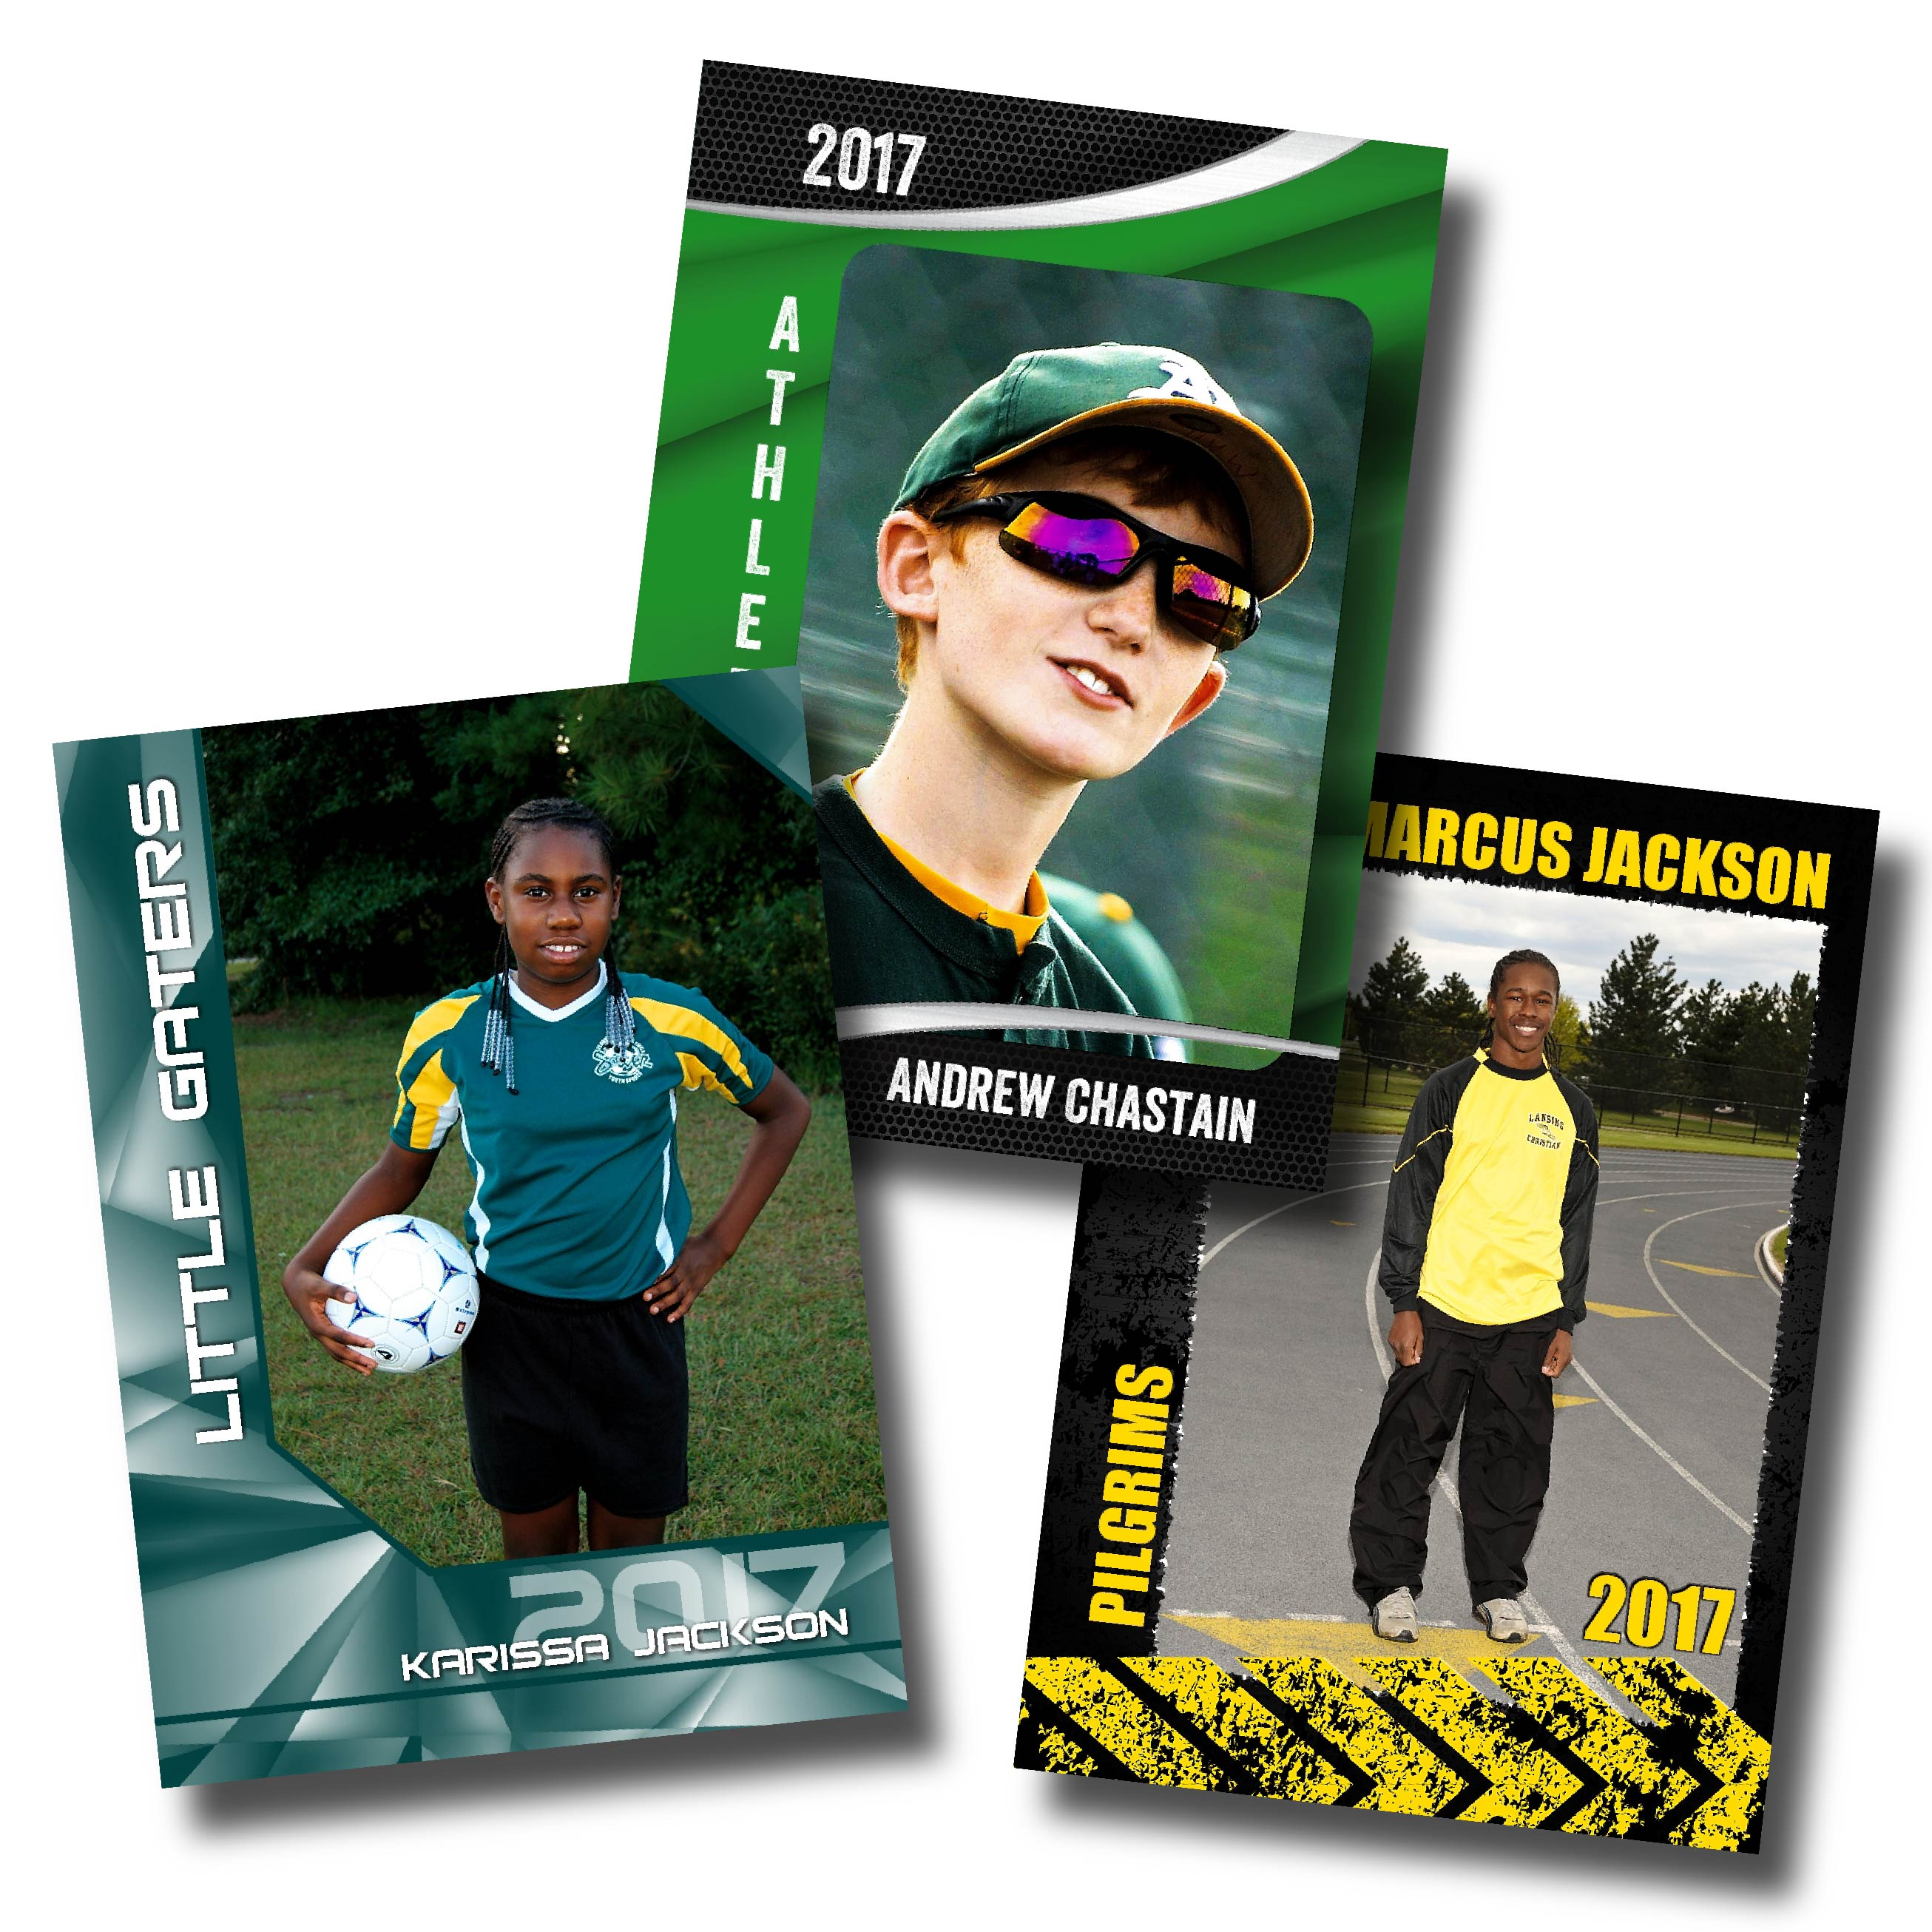 Striker Green, Brilliance Teal & Hazardous Designs Printed on Magnets